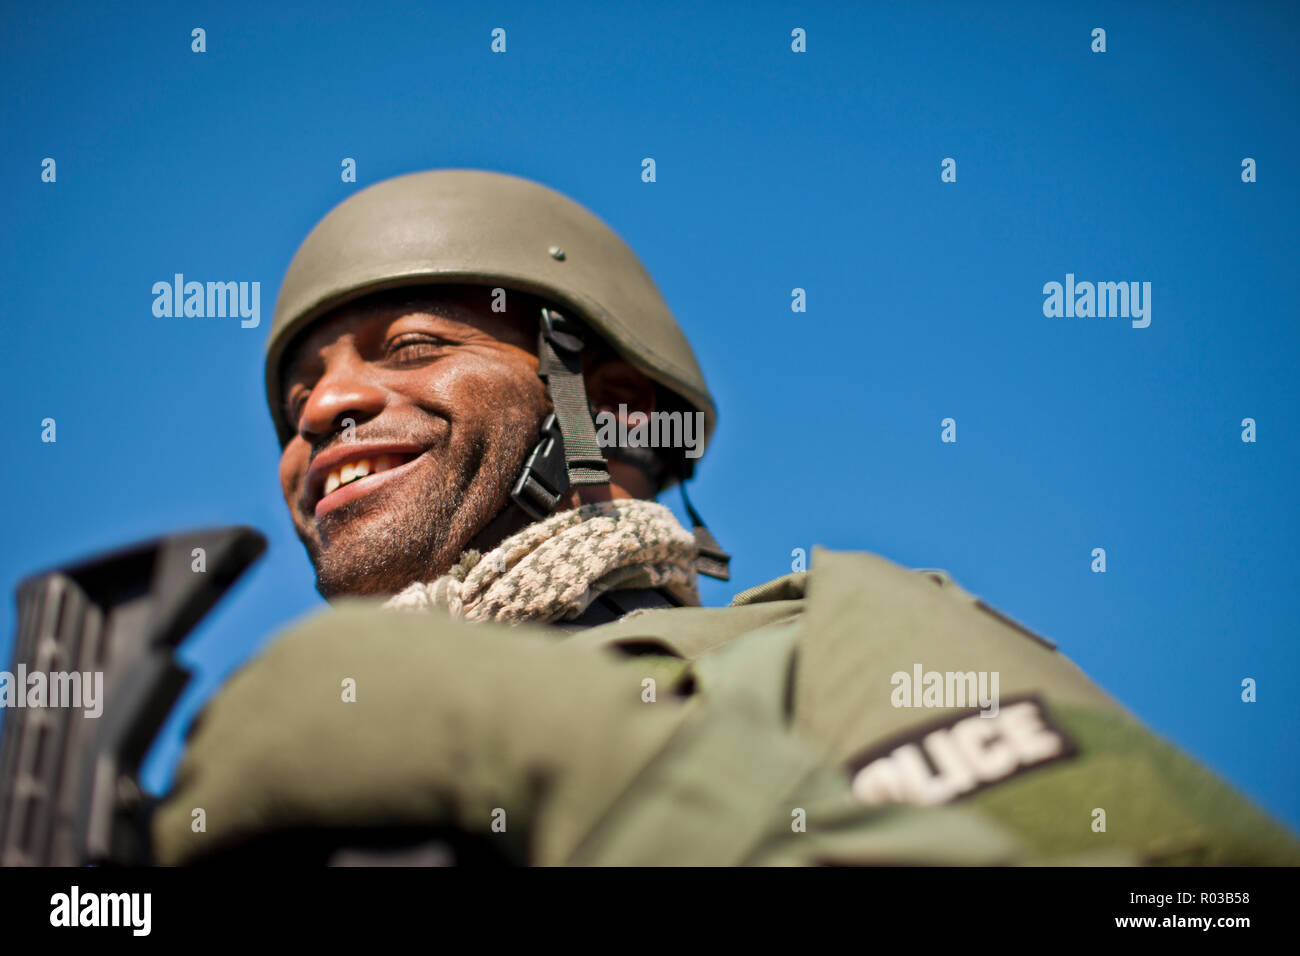 Male police officer at a training facility. - Stock Image